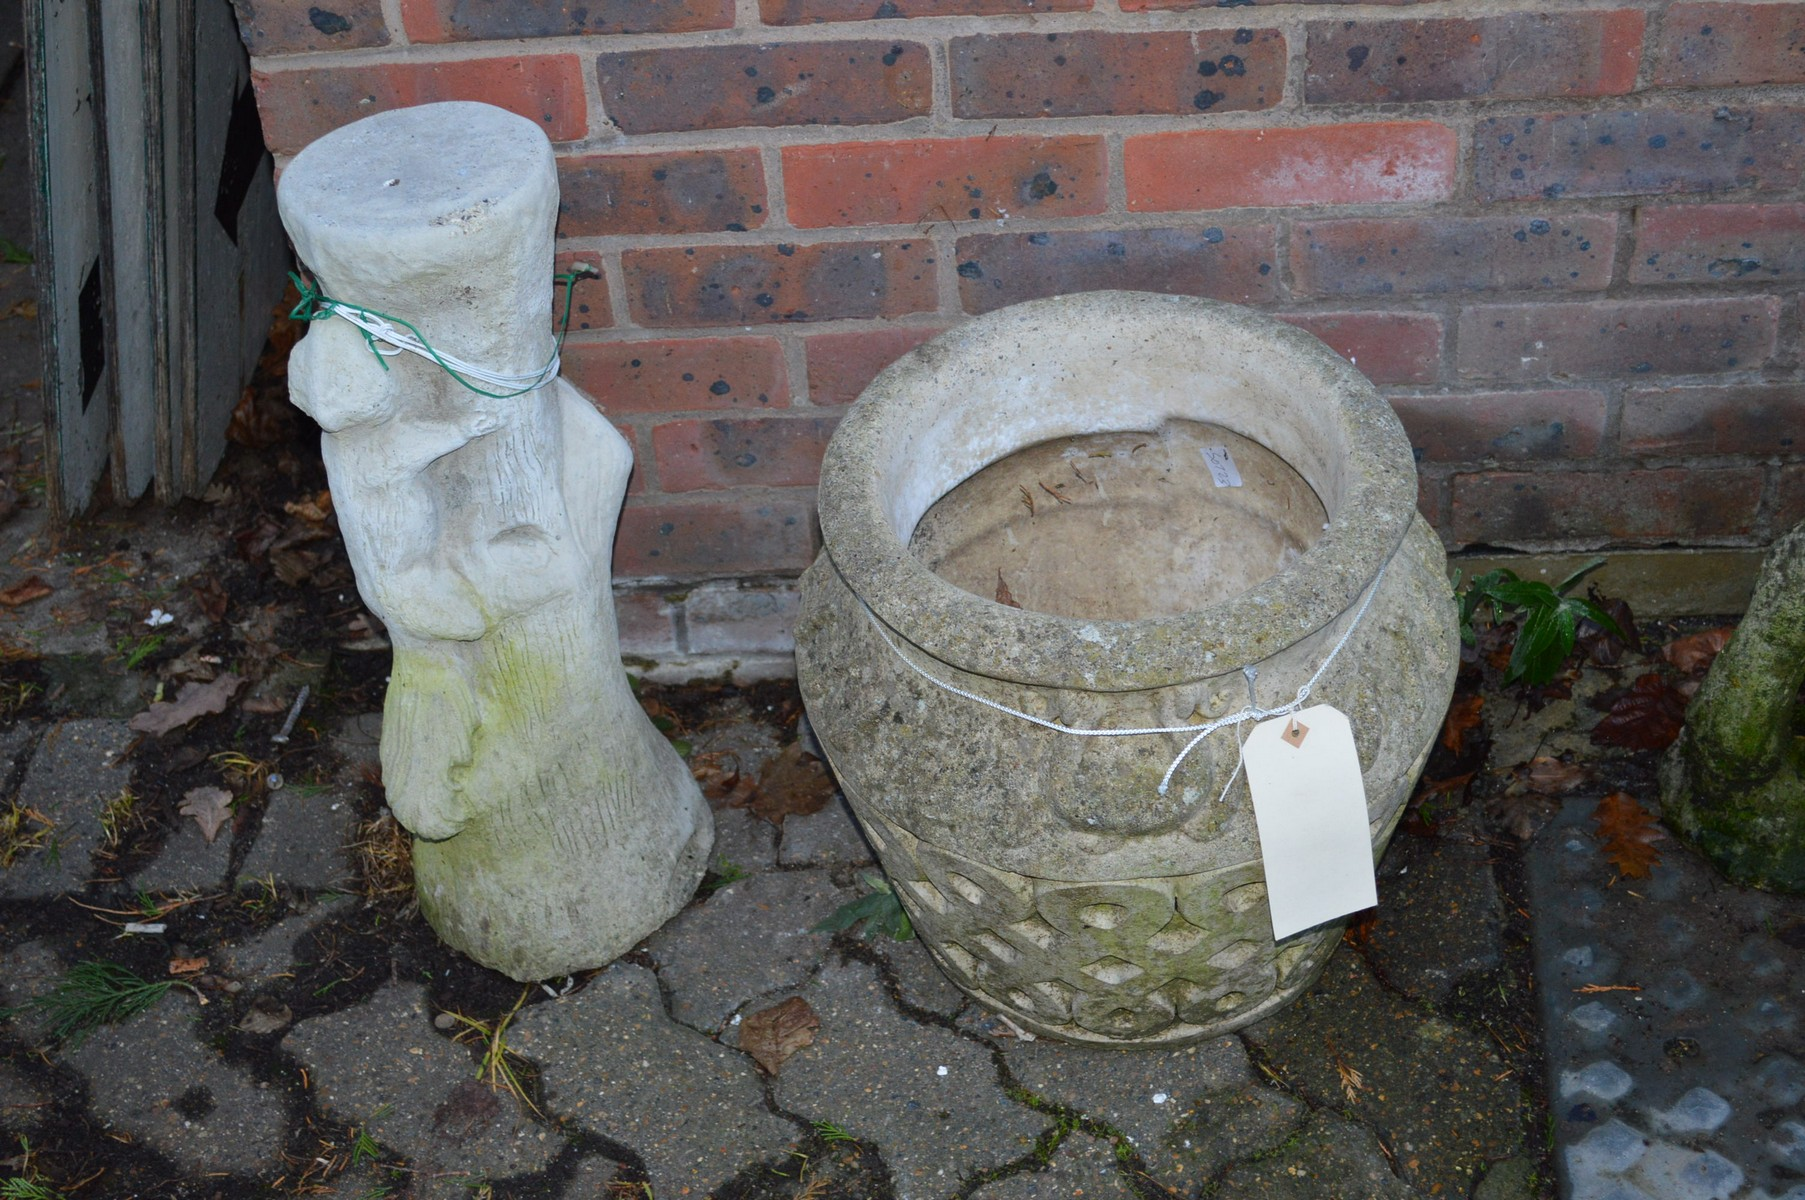 A reconstituted stone garden pot and a pot stand.